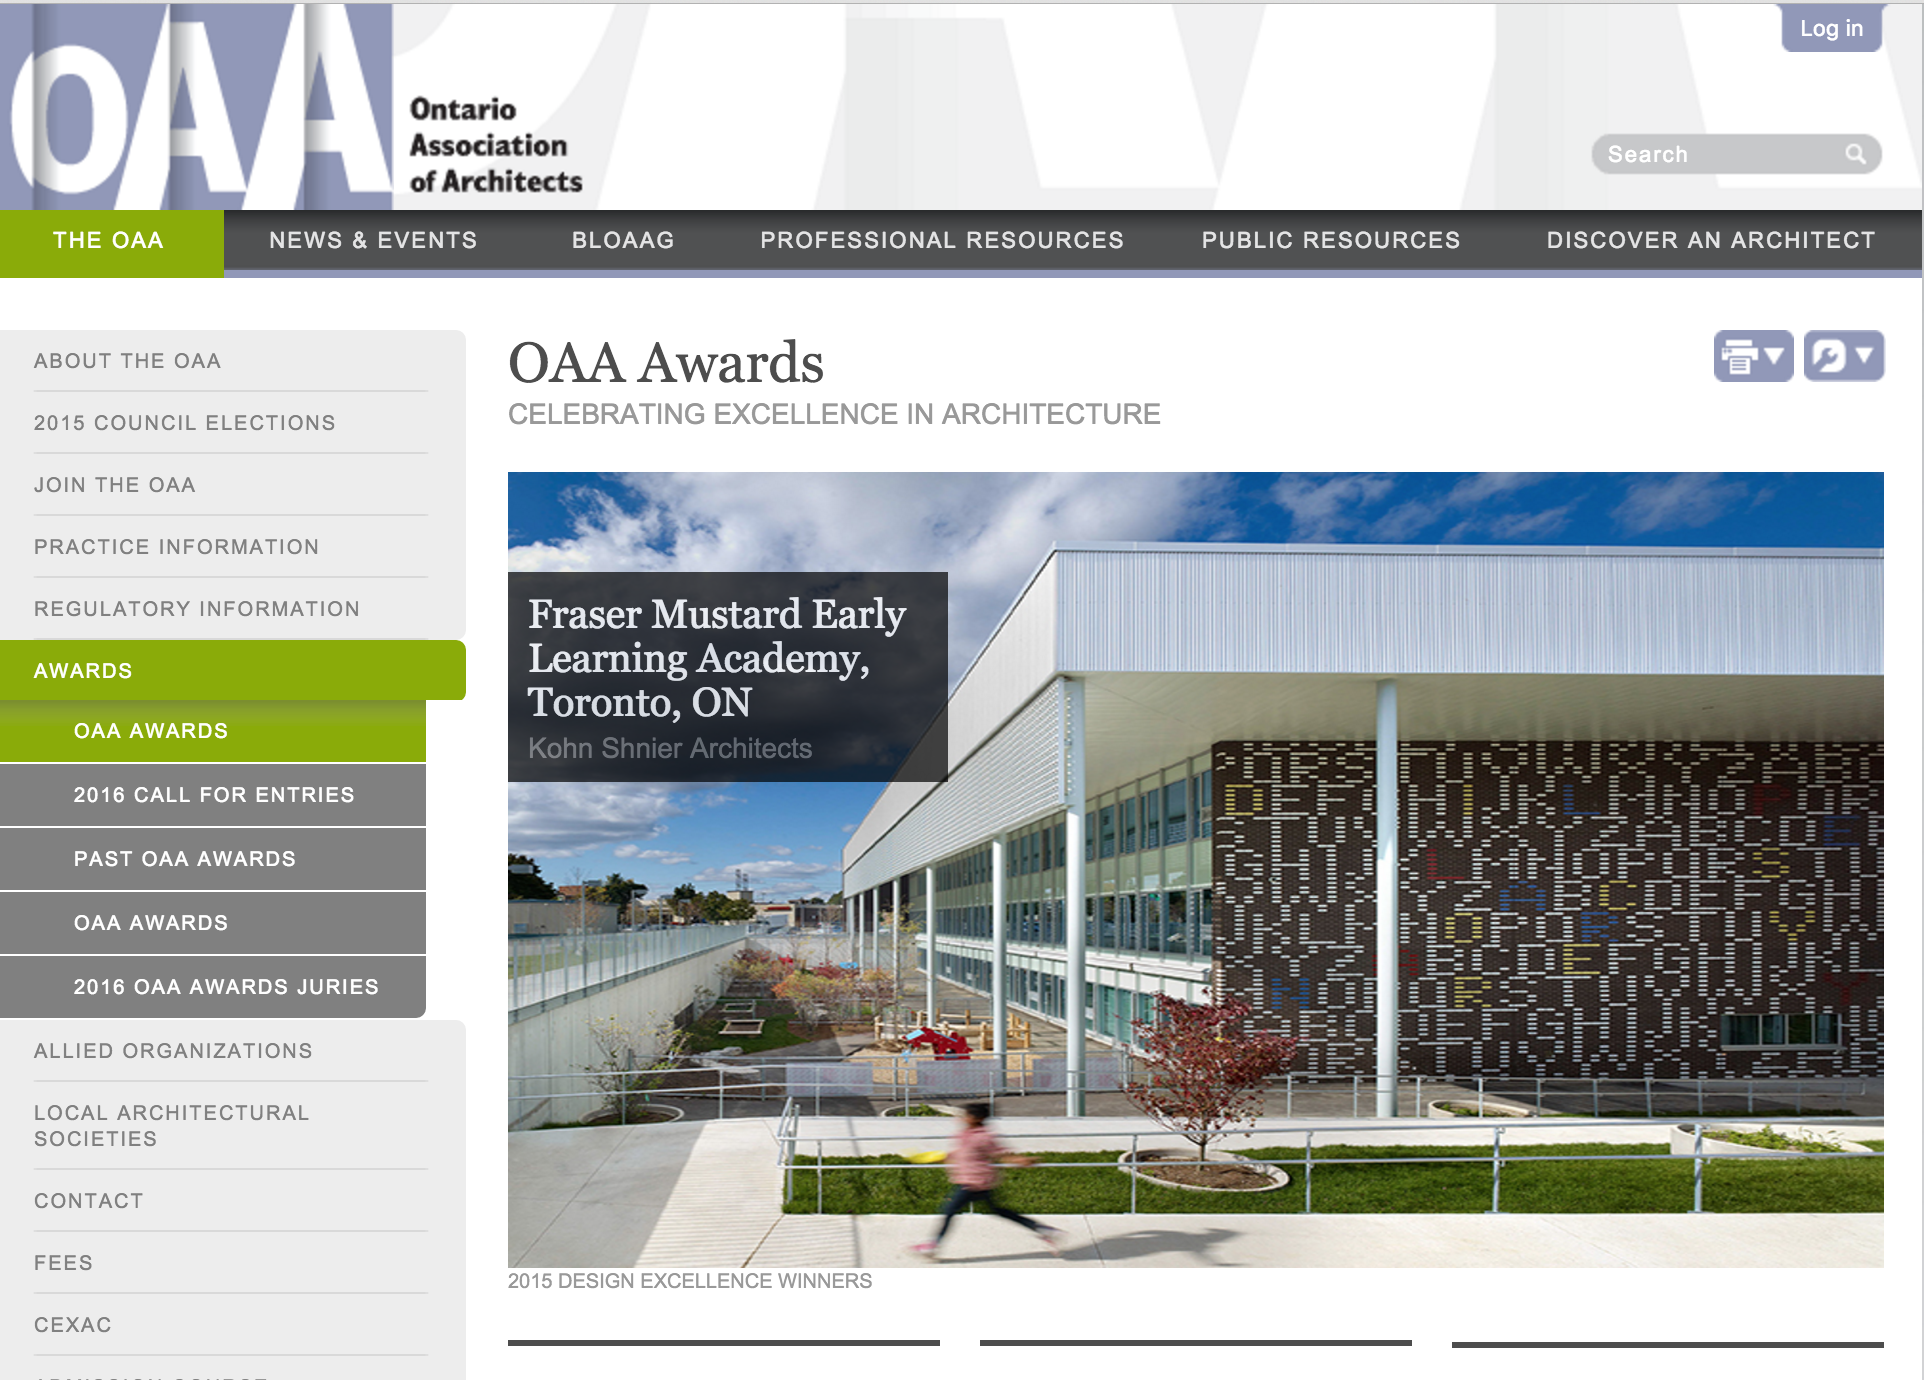 OAA AWARDS